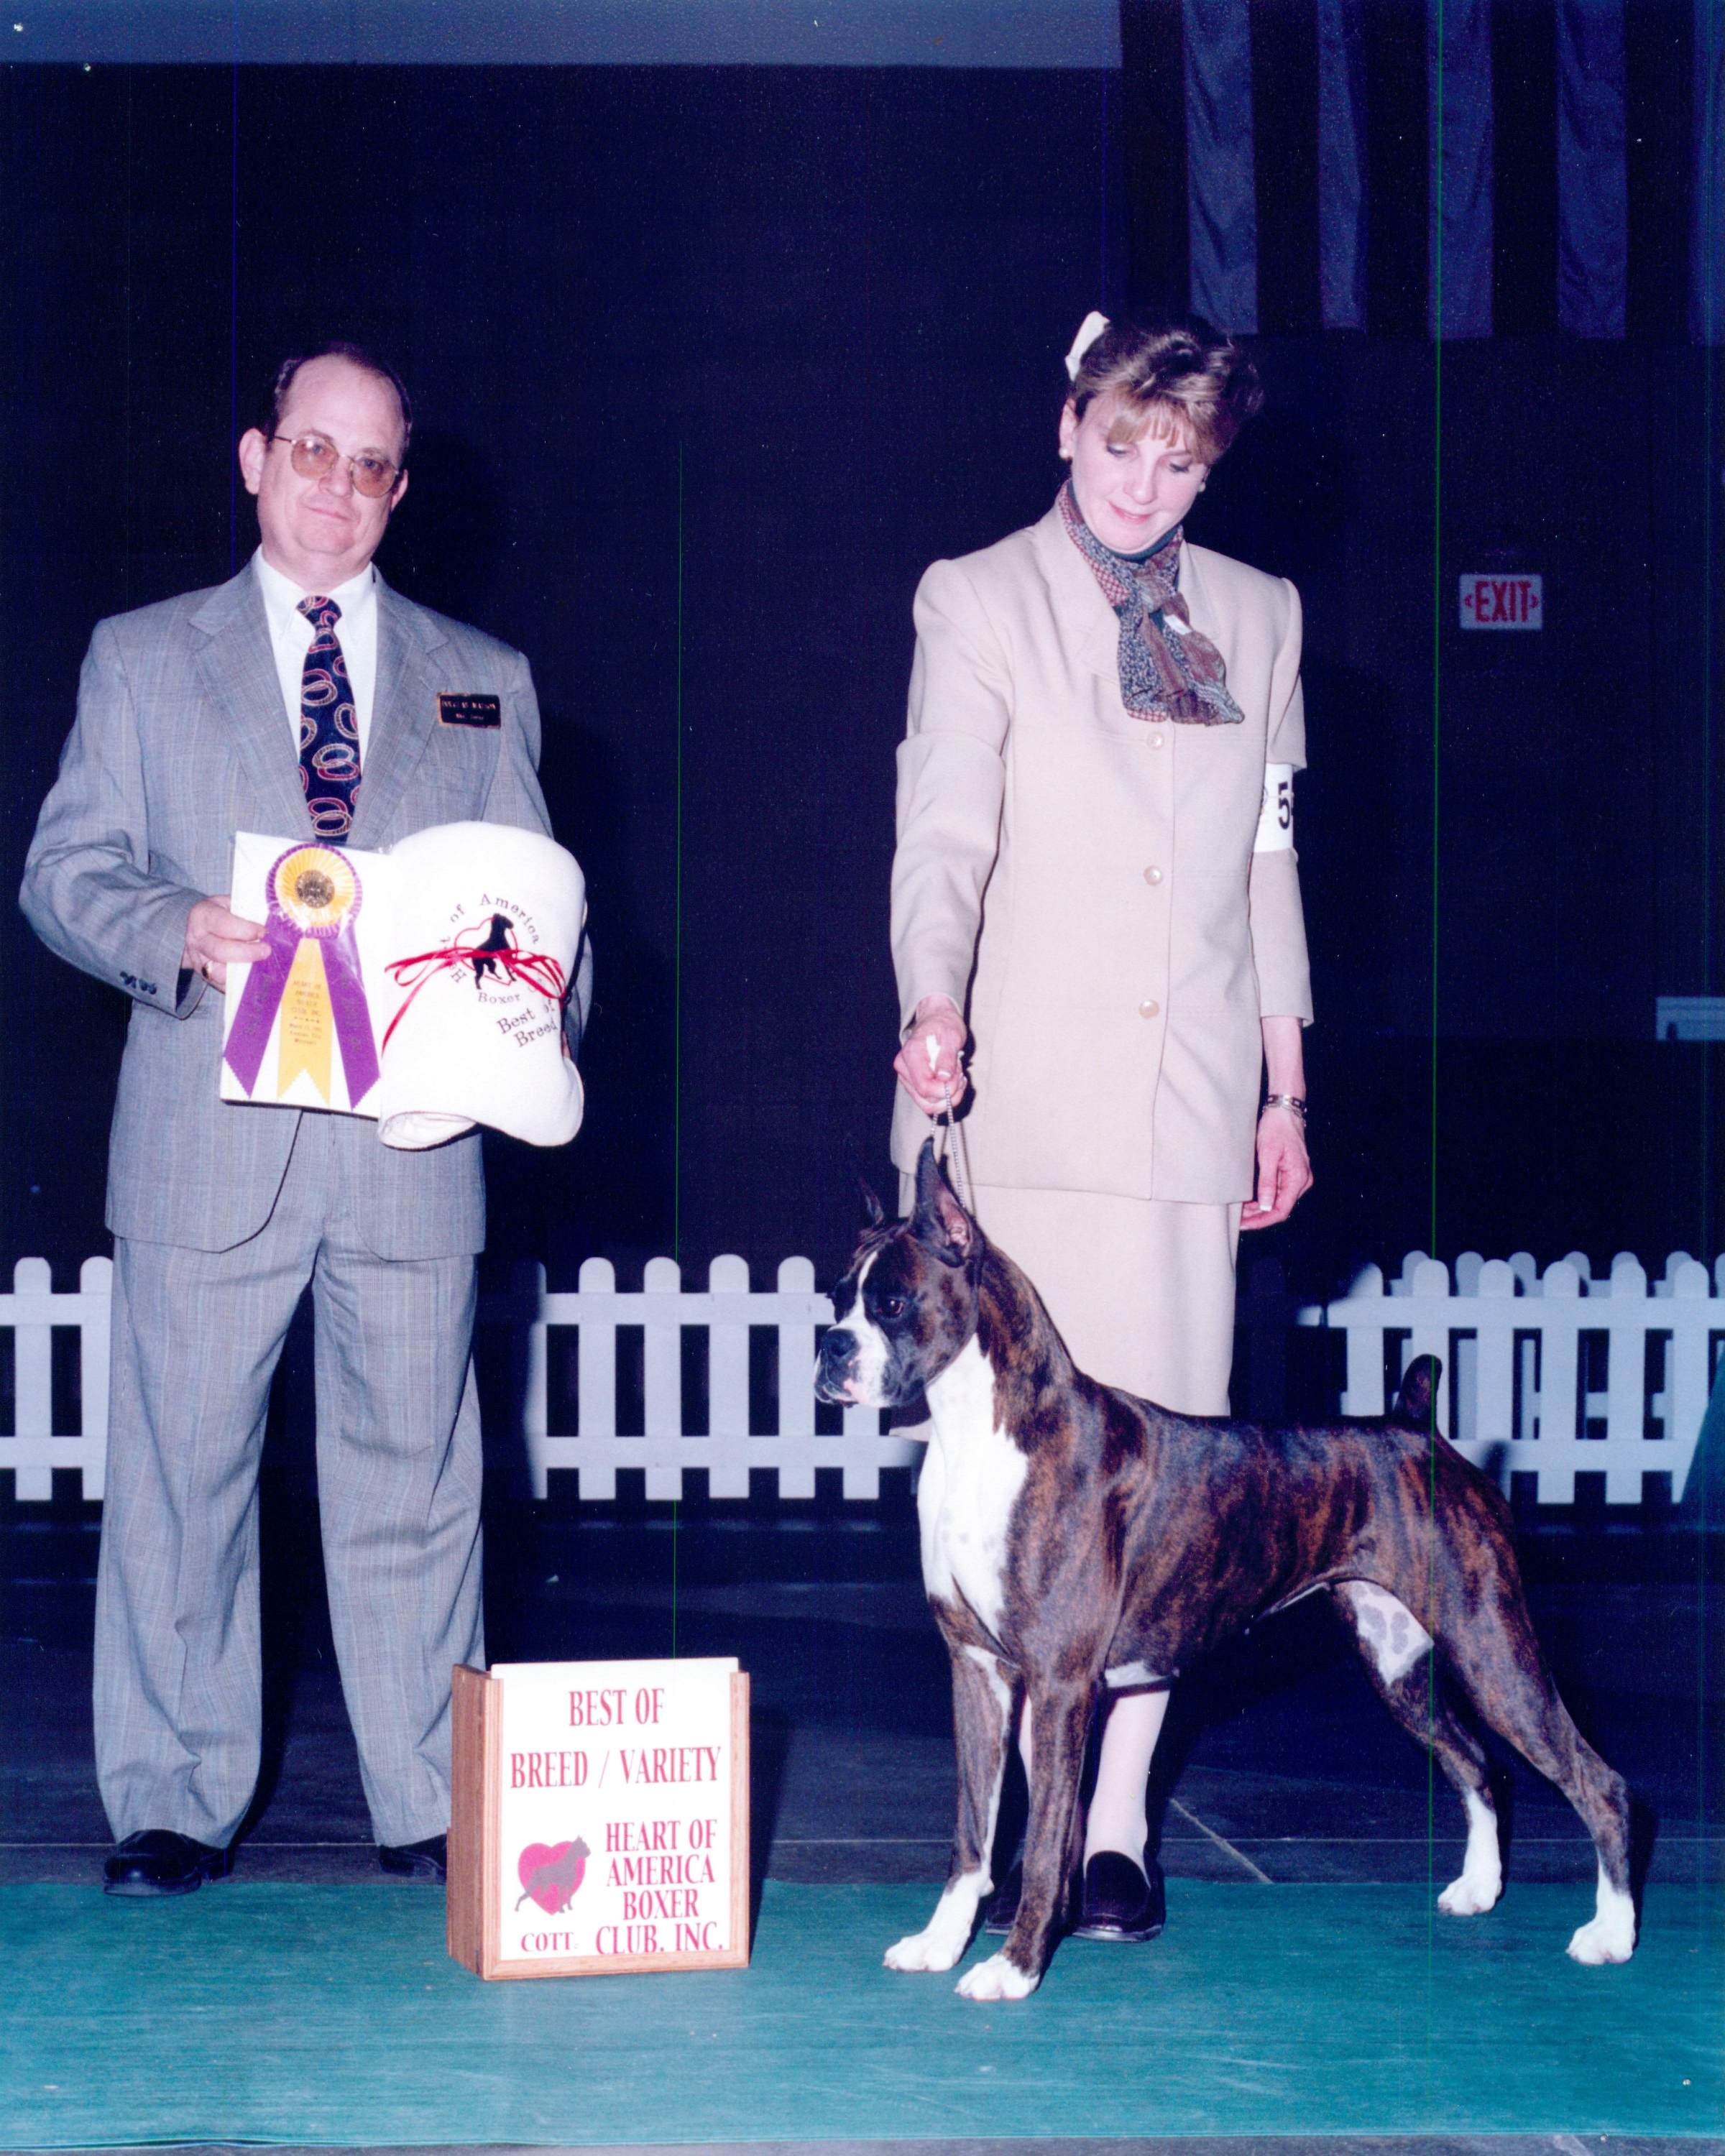 Best of Breed @ 2002 Specialty Show #1